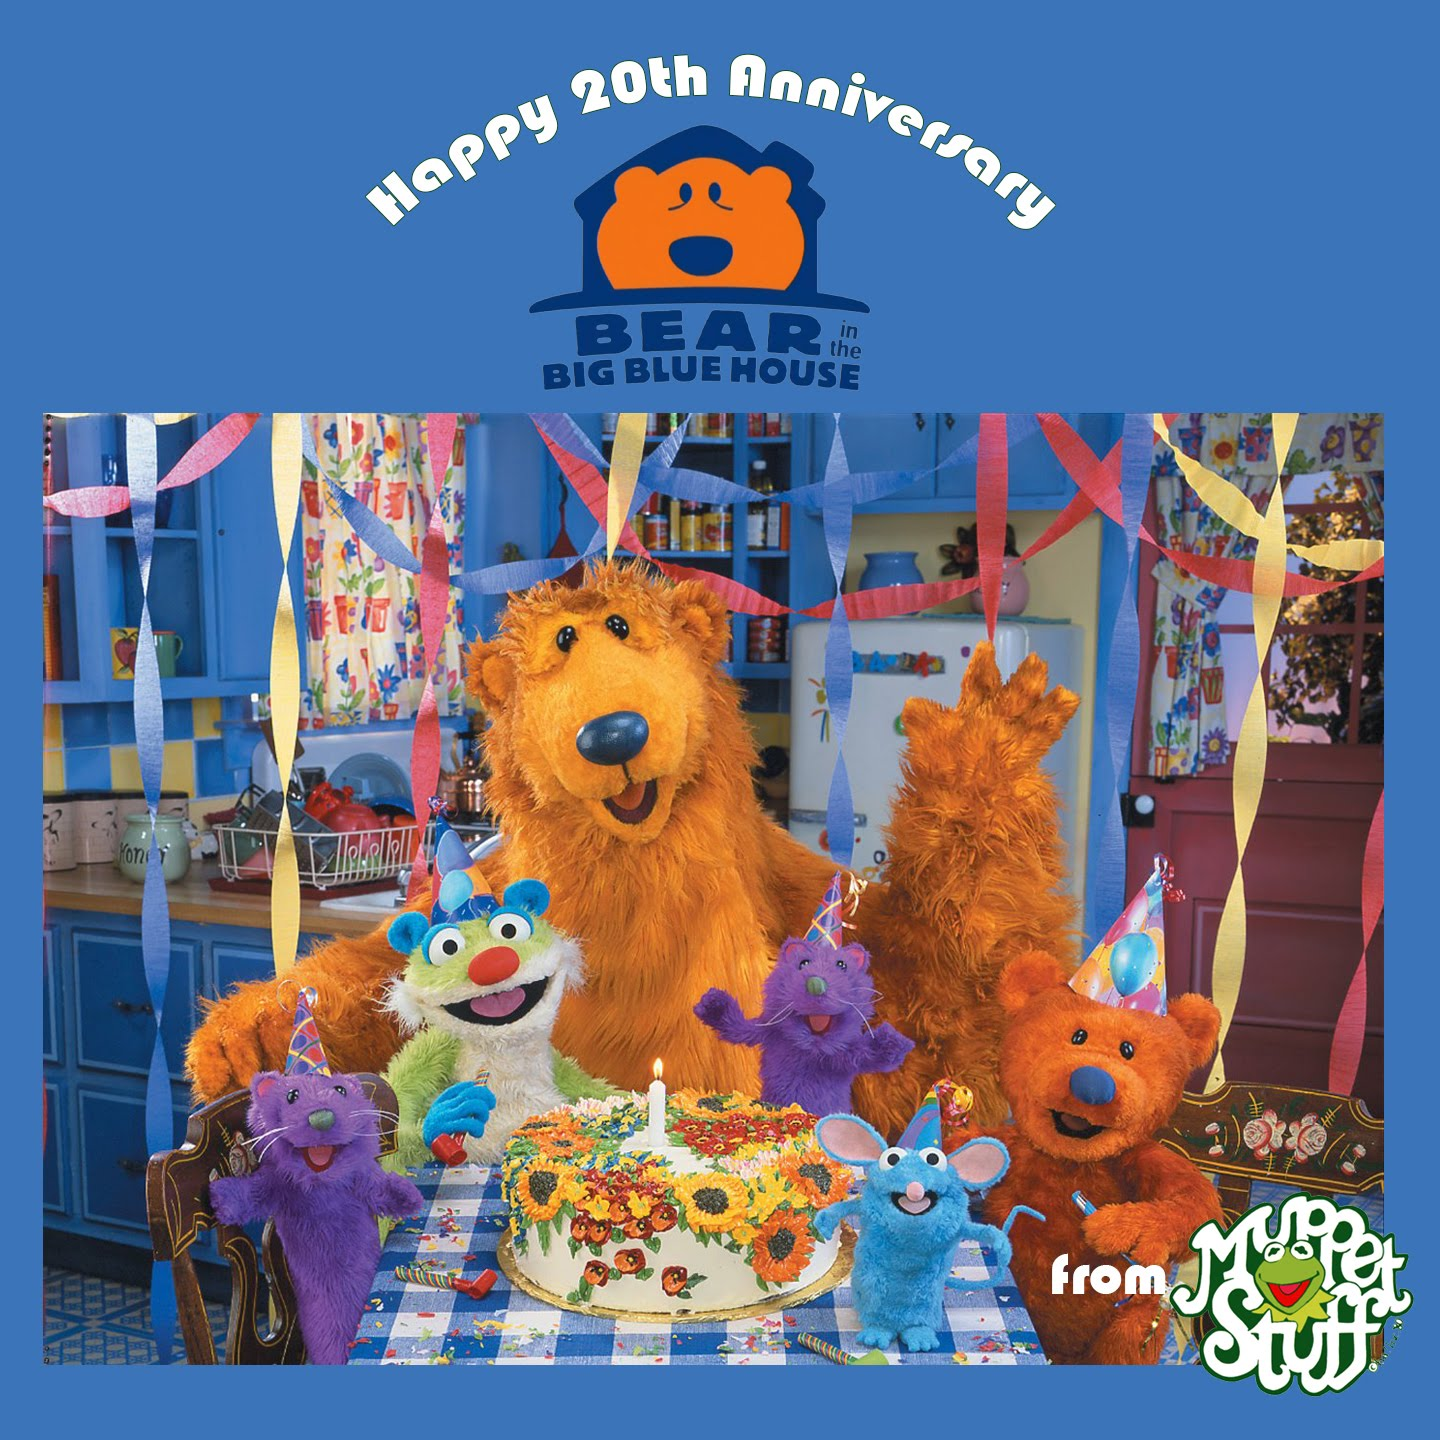 last week bear in the big blue house celebrated its 20th anniversary - Big Blue House